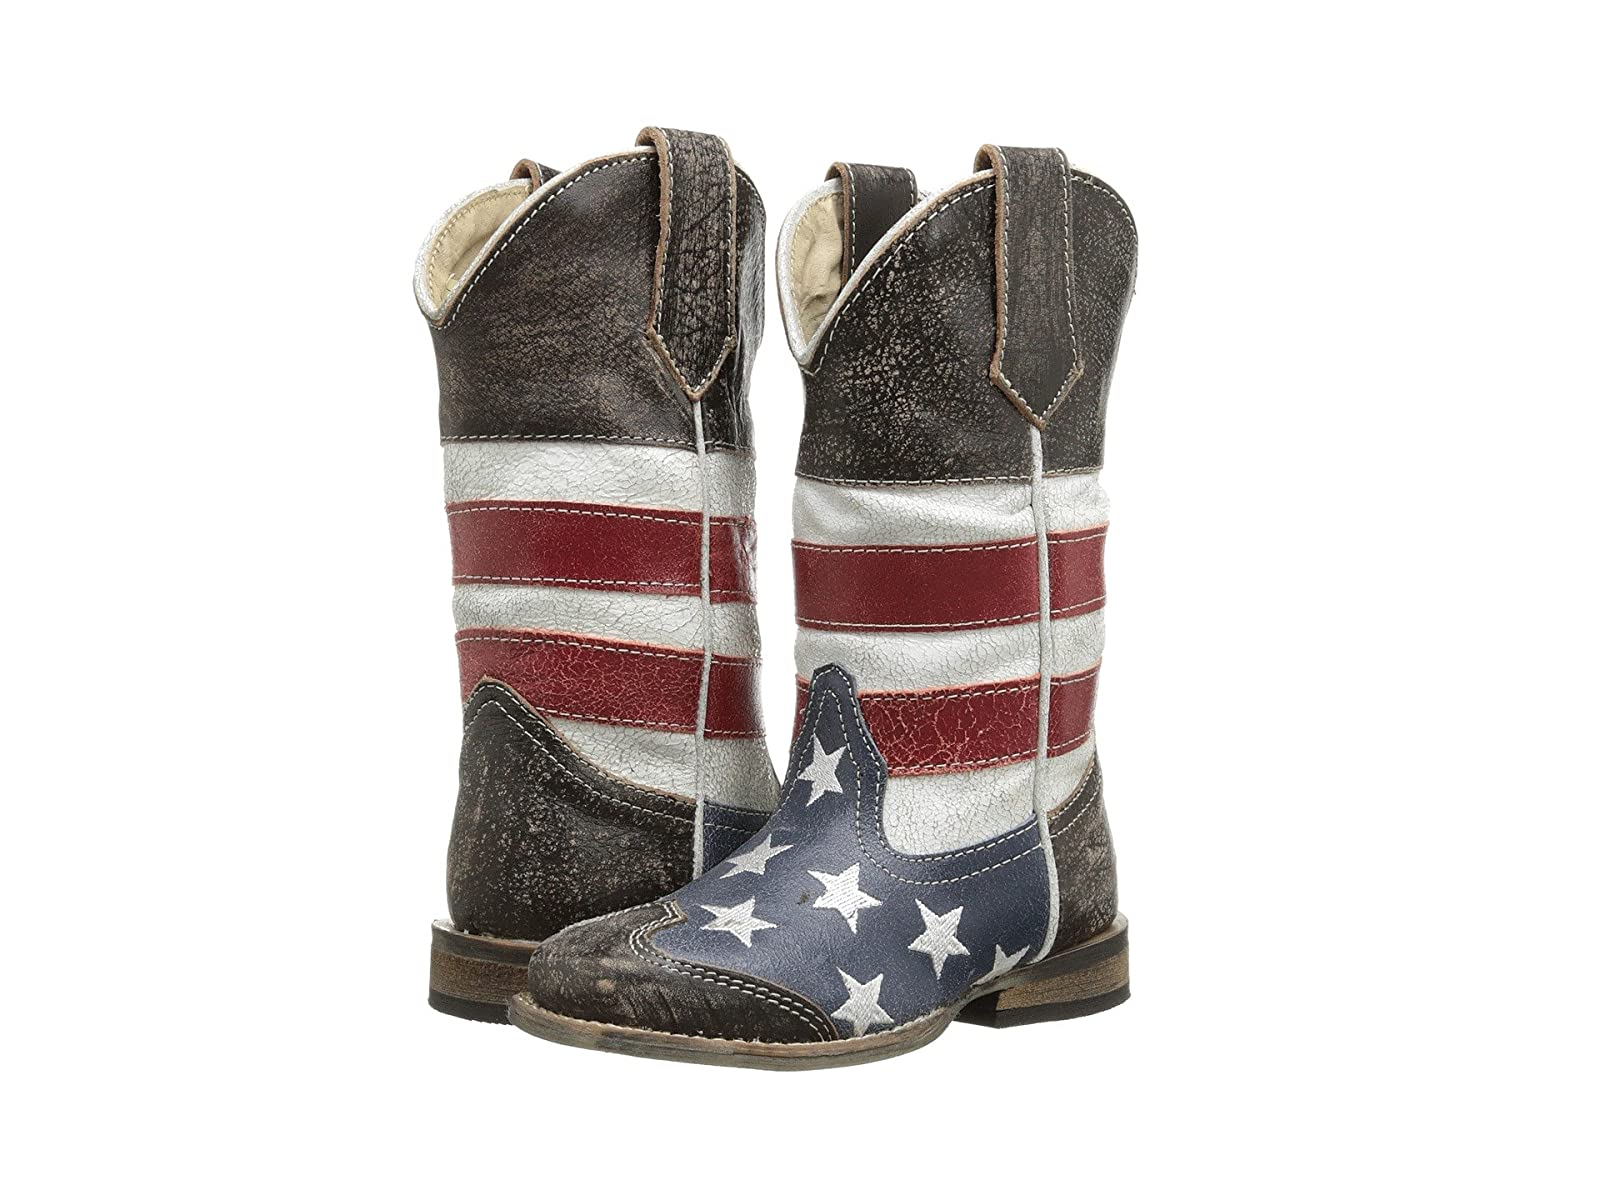 Roper Kids American Flag Square Toe Boot (Toddler/Little Kid)Economical and quality shoes